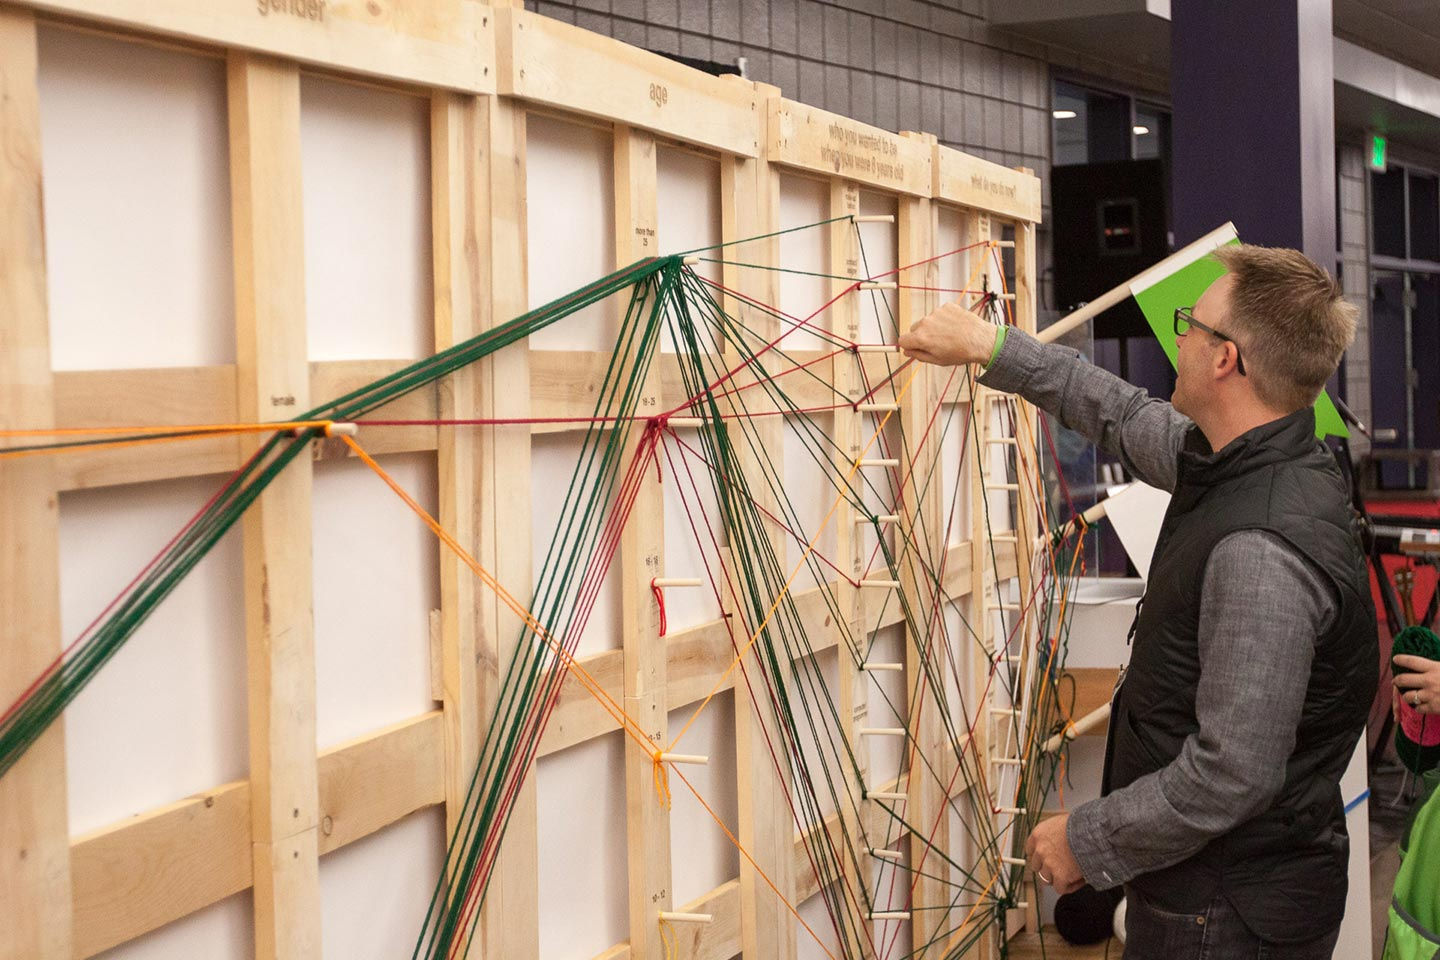 Man interacting with wood and yard installation